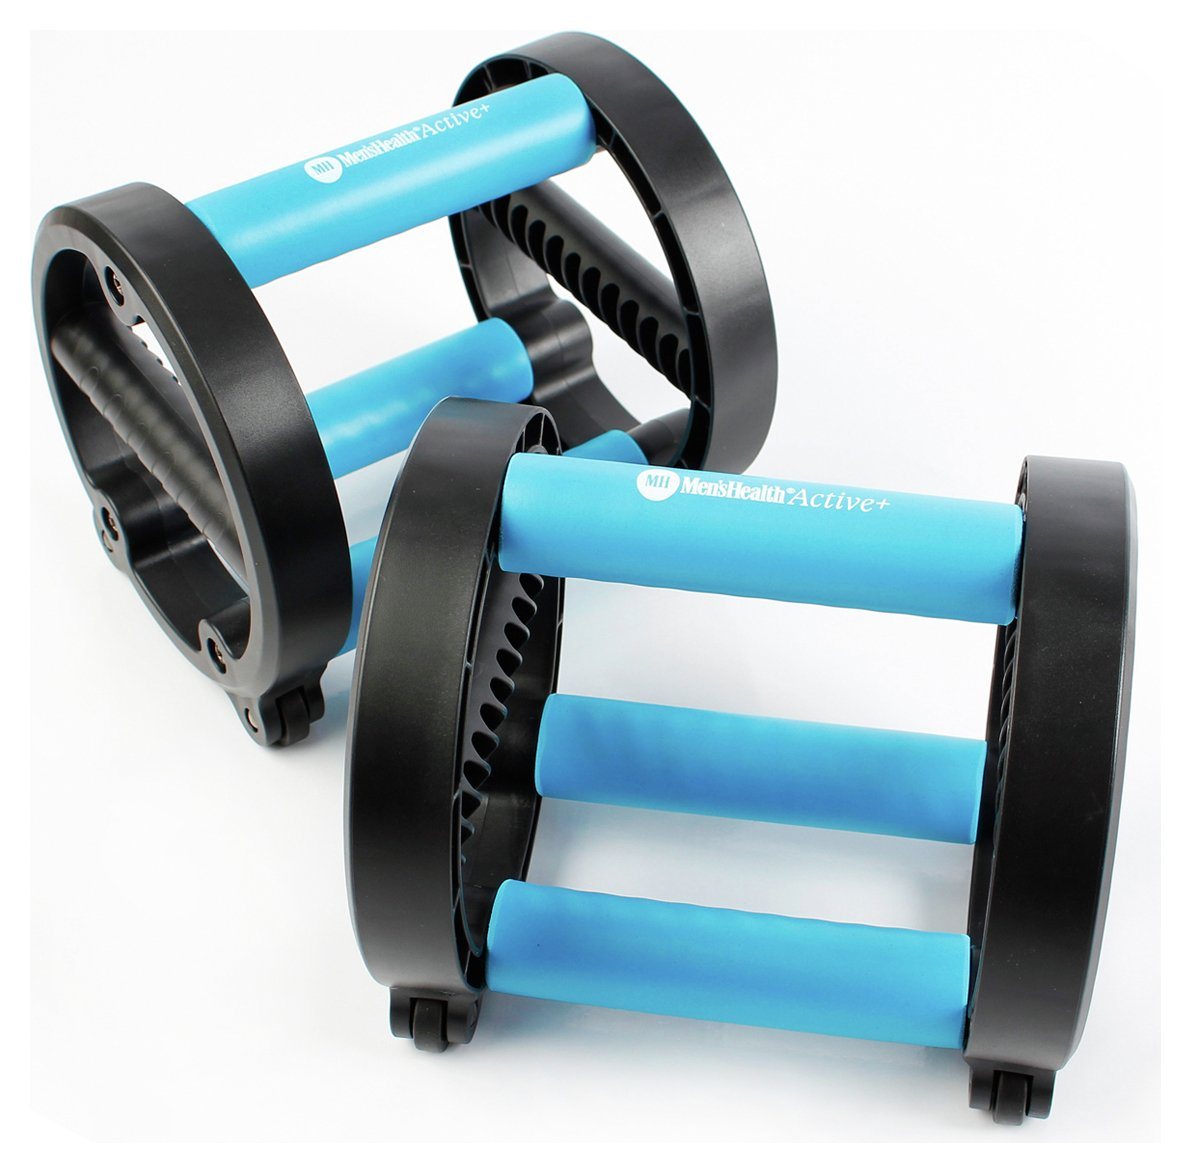 Men's Health Ab, Core and Push Up Wheel